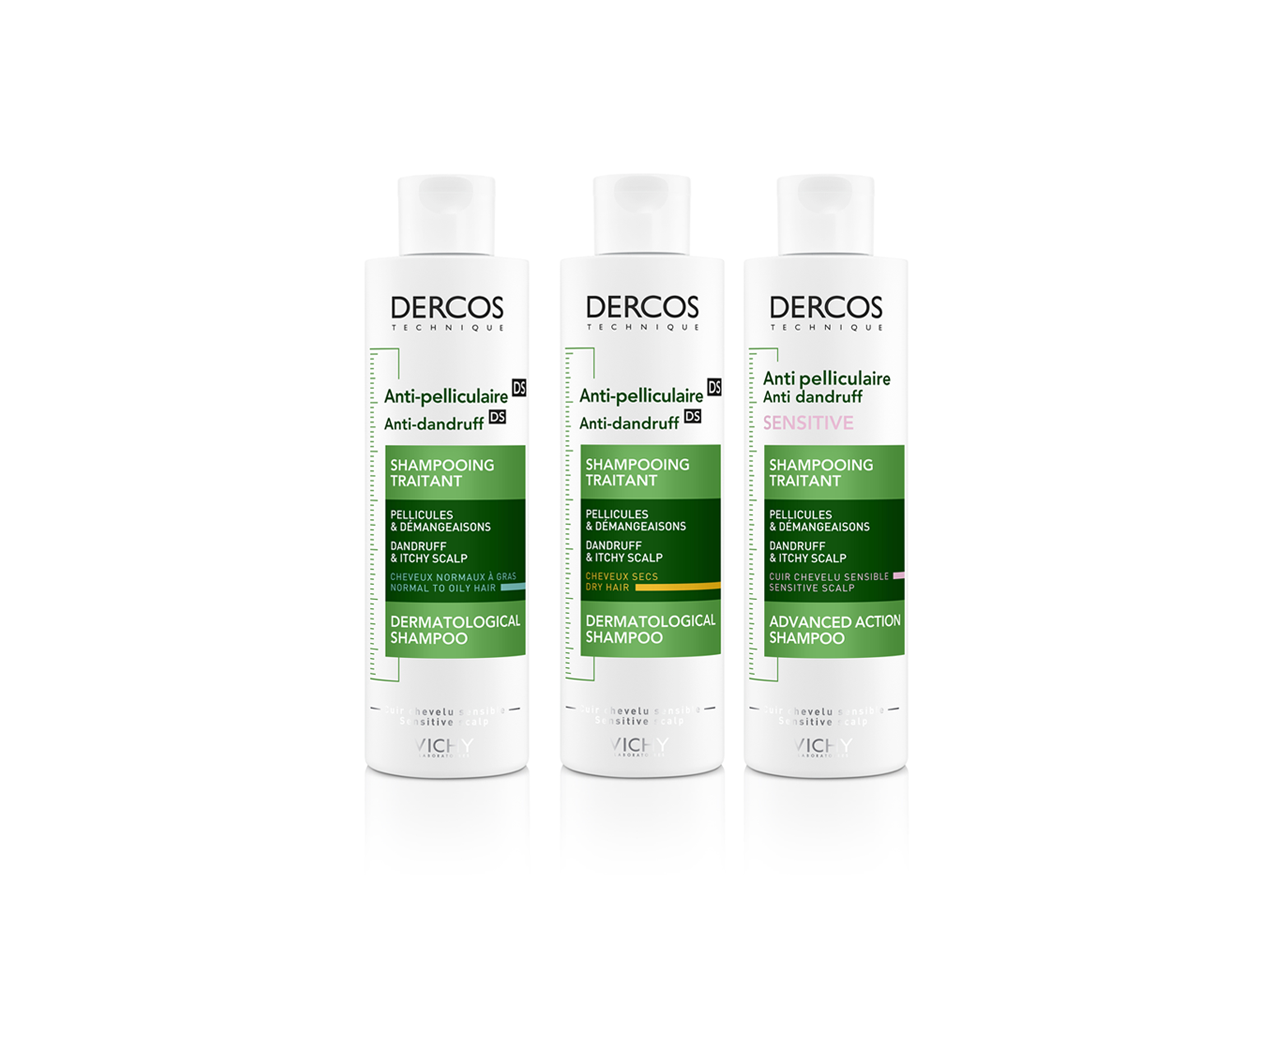 Dercos - Anti-pelliculaire Shampooing Traitant - Vichy